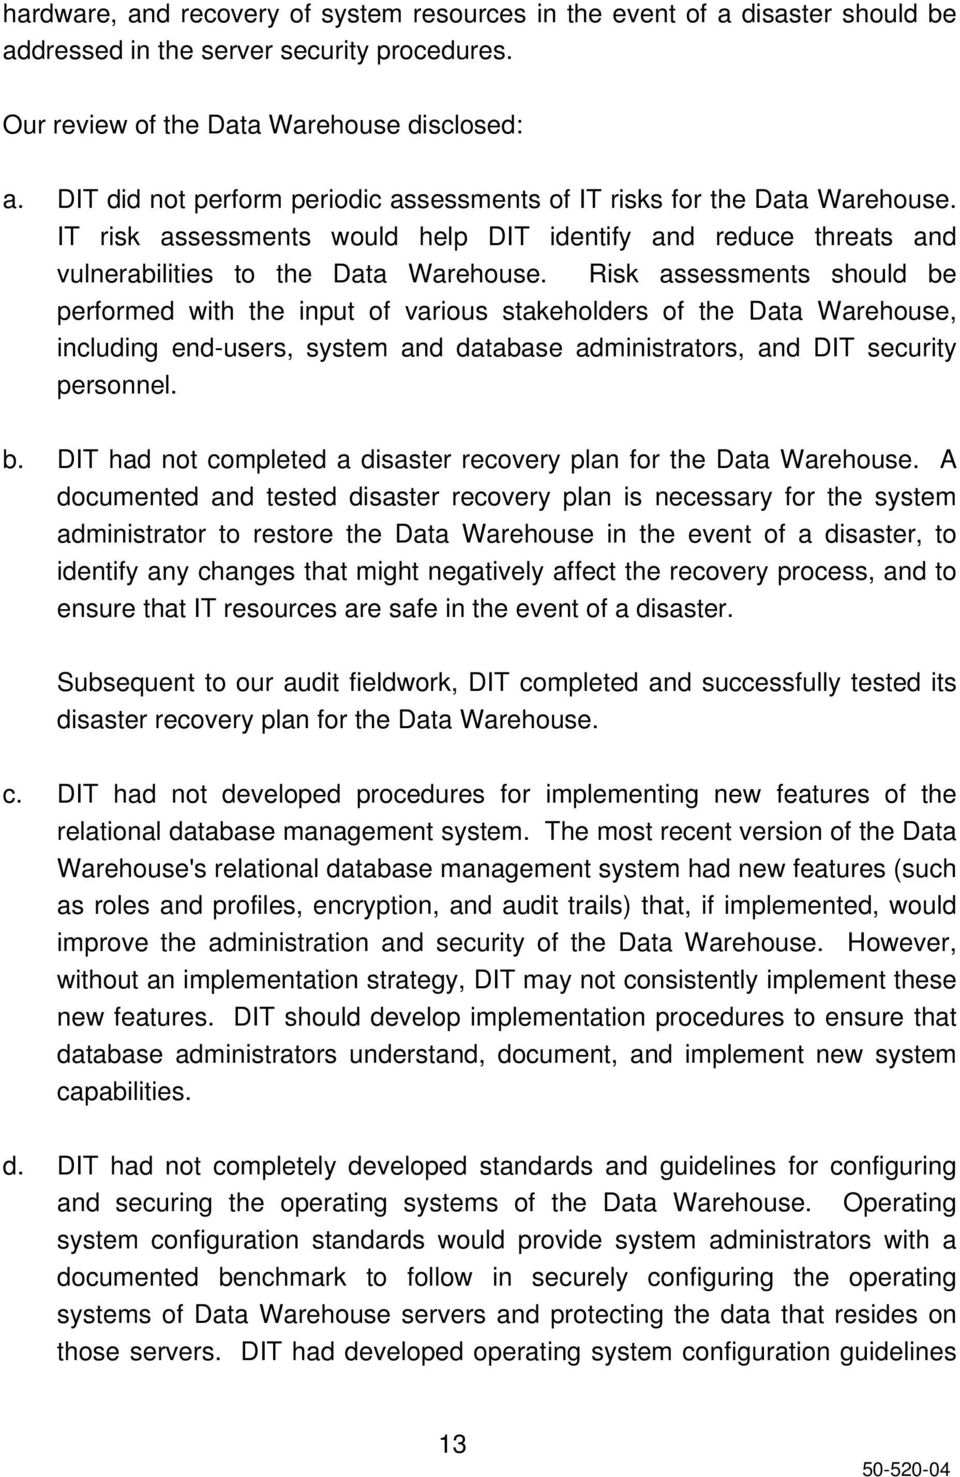 Risk assessments should be performed with the input of various stakeholders of the Data Warehouse, including end-users, system and database administrators, and DIT security personnel. b. DIT had not completed a disaster recovery plan for the Data Warehouse.